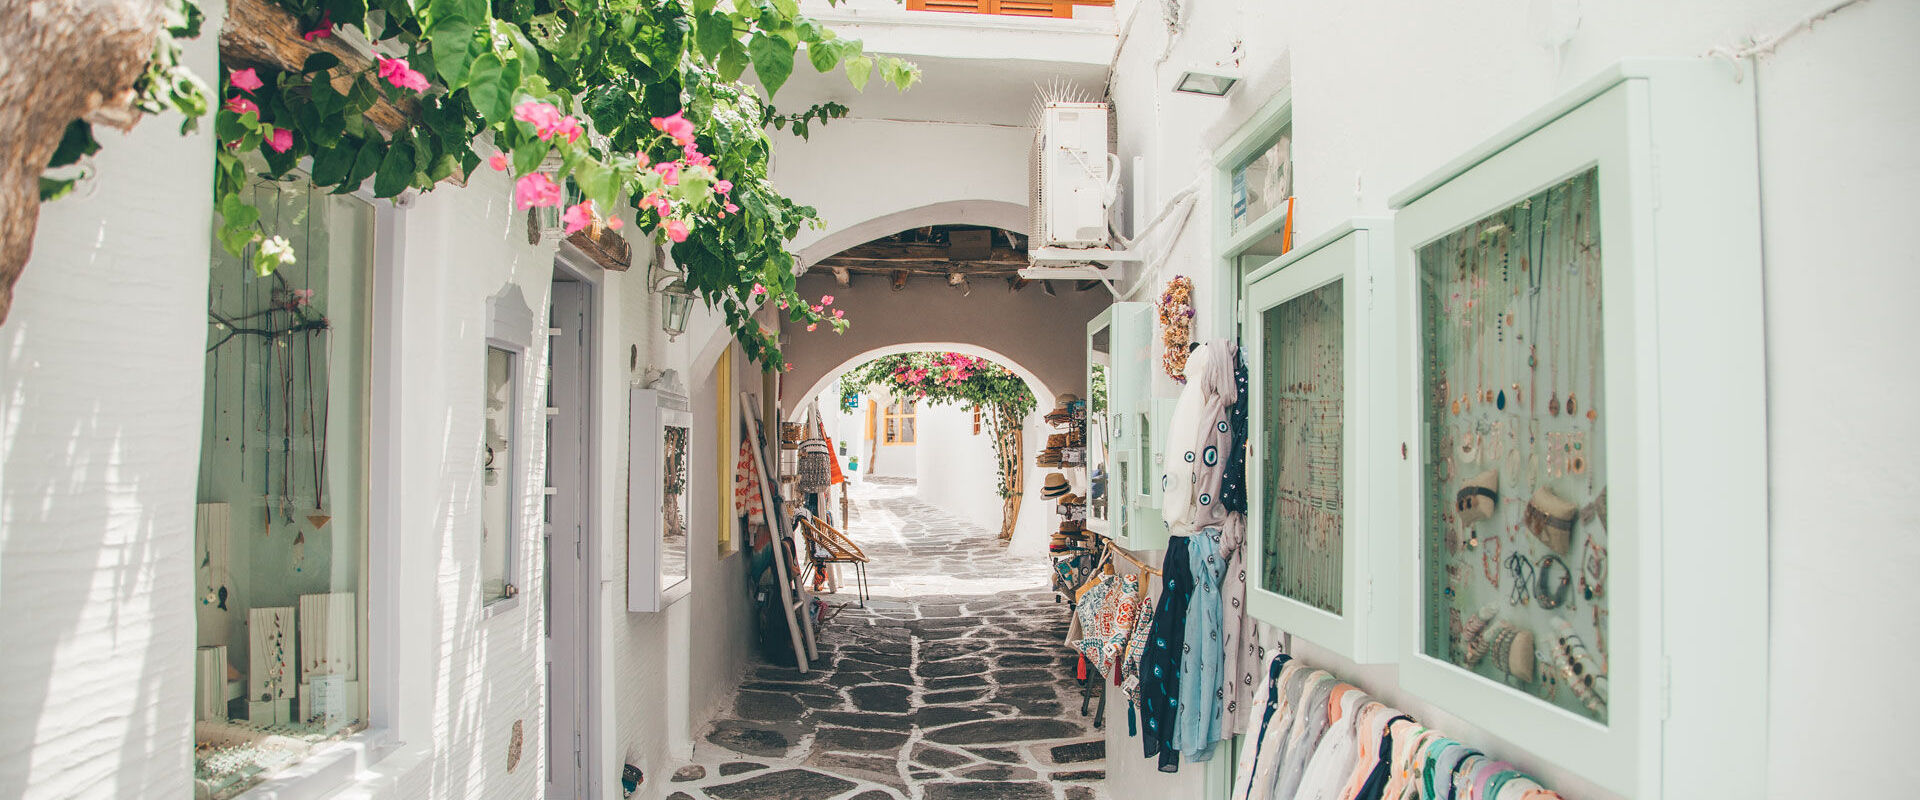 Disappear into the whitewashed alleyways, amidst the bougainvillea, cobblestones, souvenir shops and arts galleries